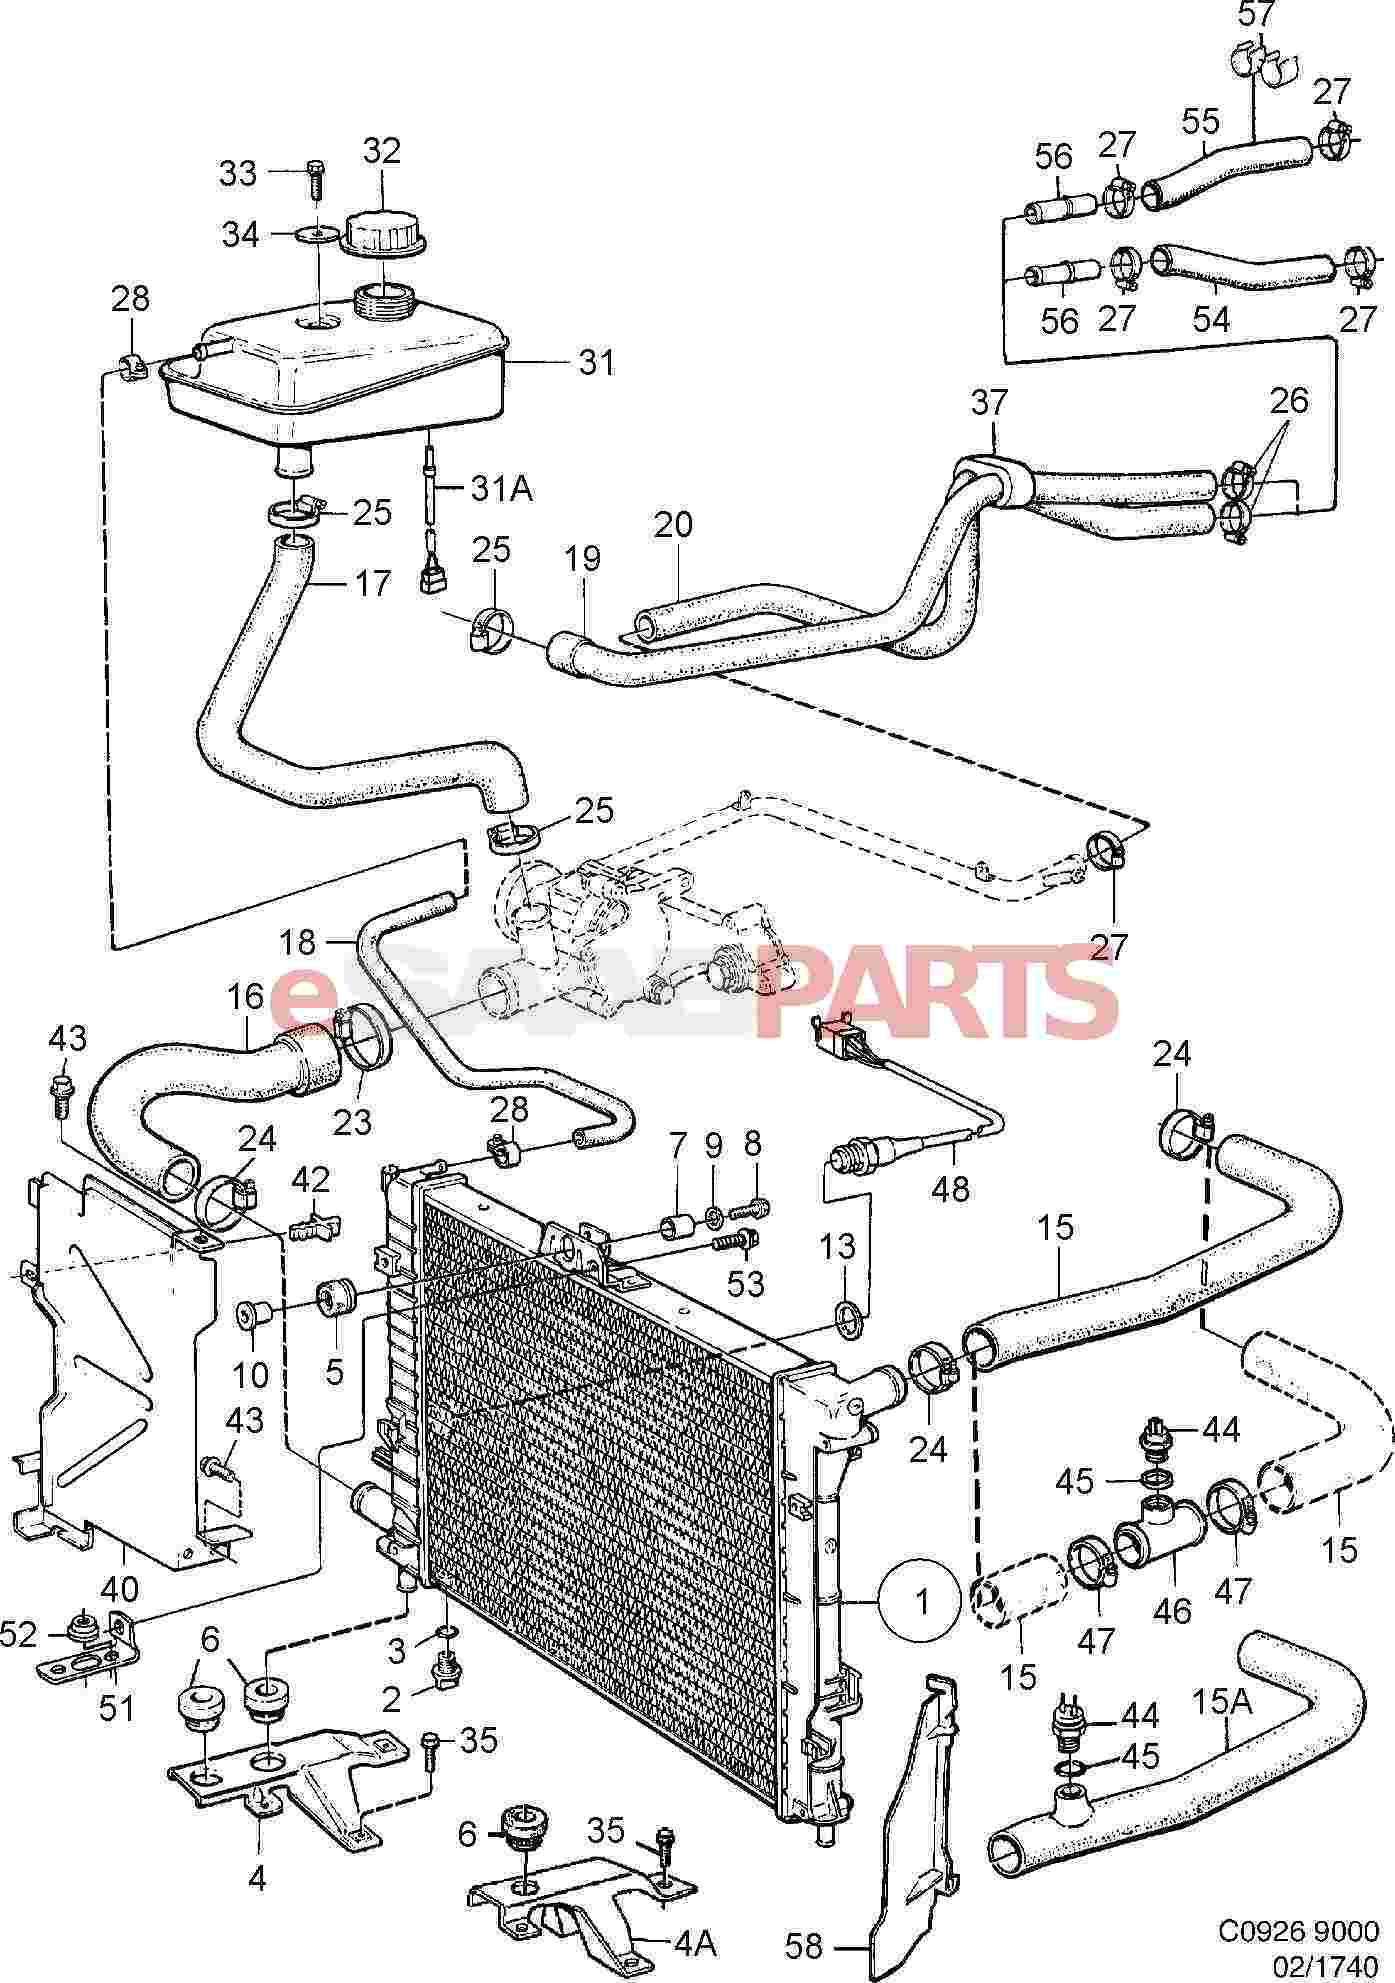 saab 9000 cooling system diagram